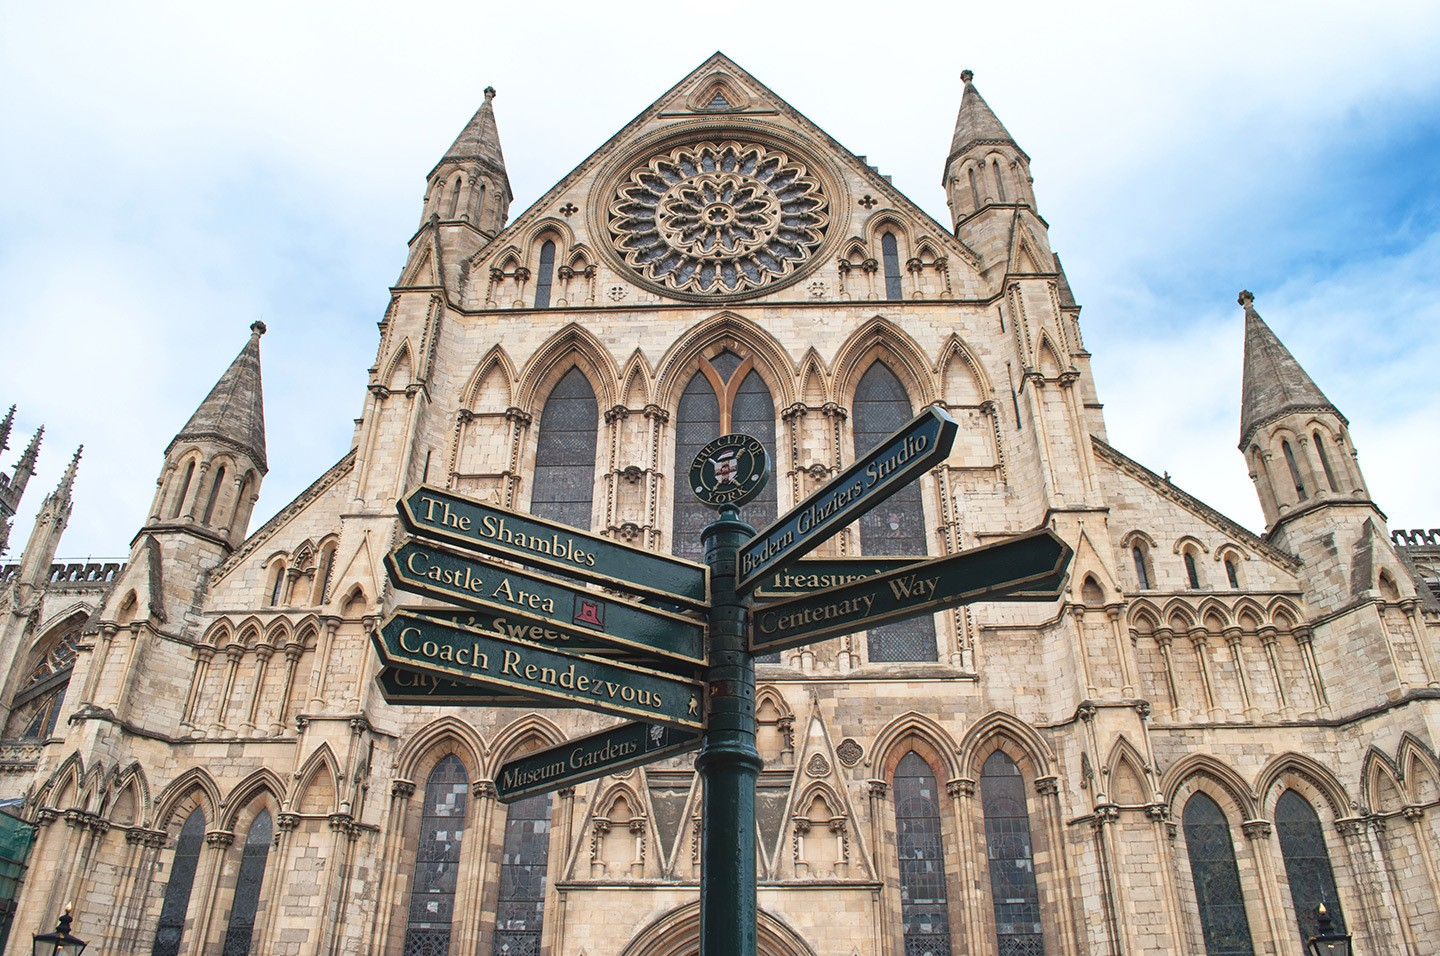 The exterior of York Minster